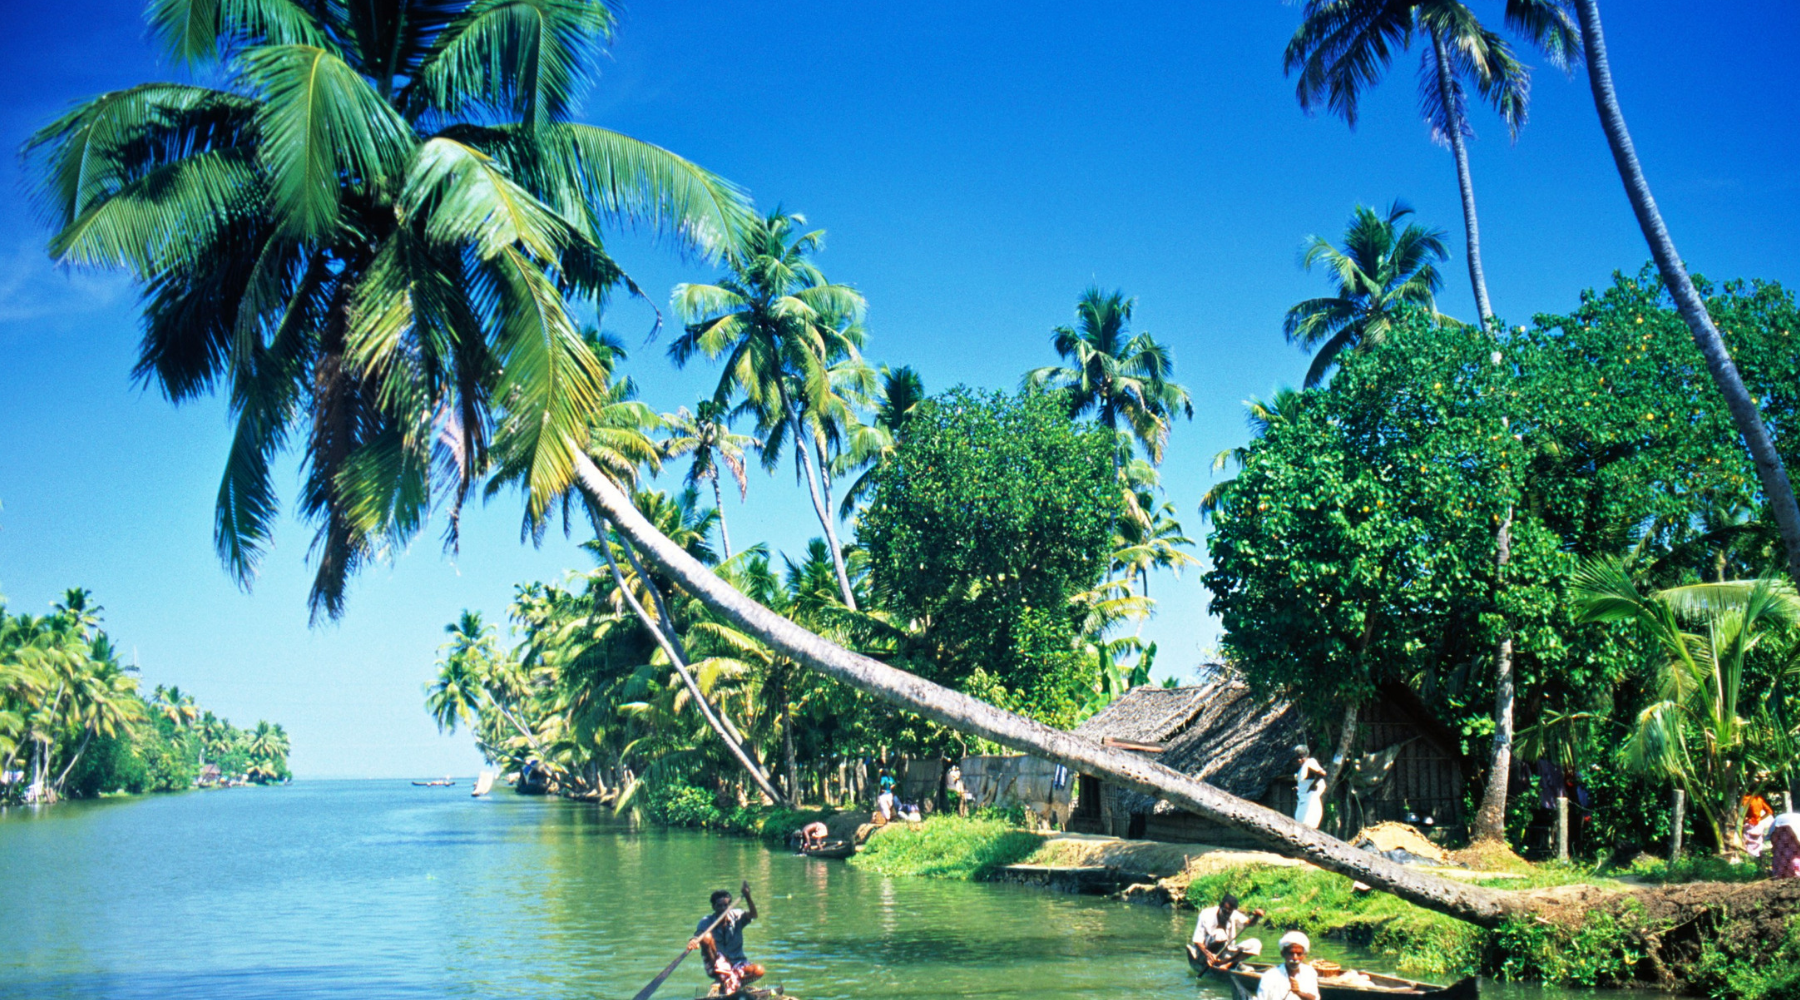 UPDATED List of Kerala Travel Blogs and Websites For Guest Blog Posts wallpaper